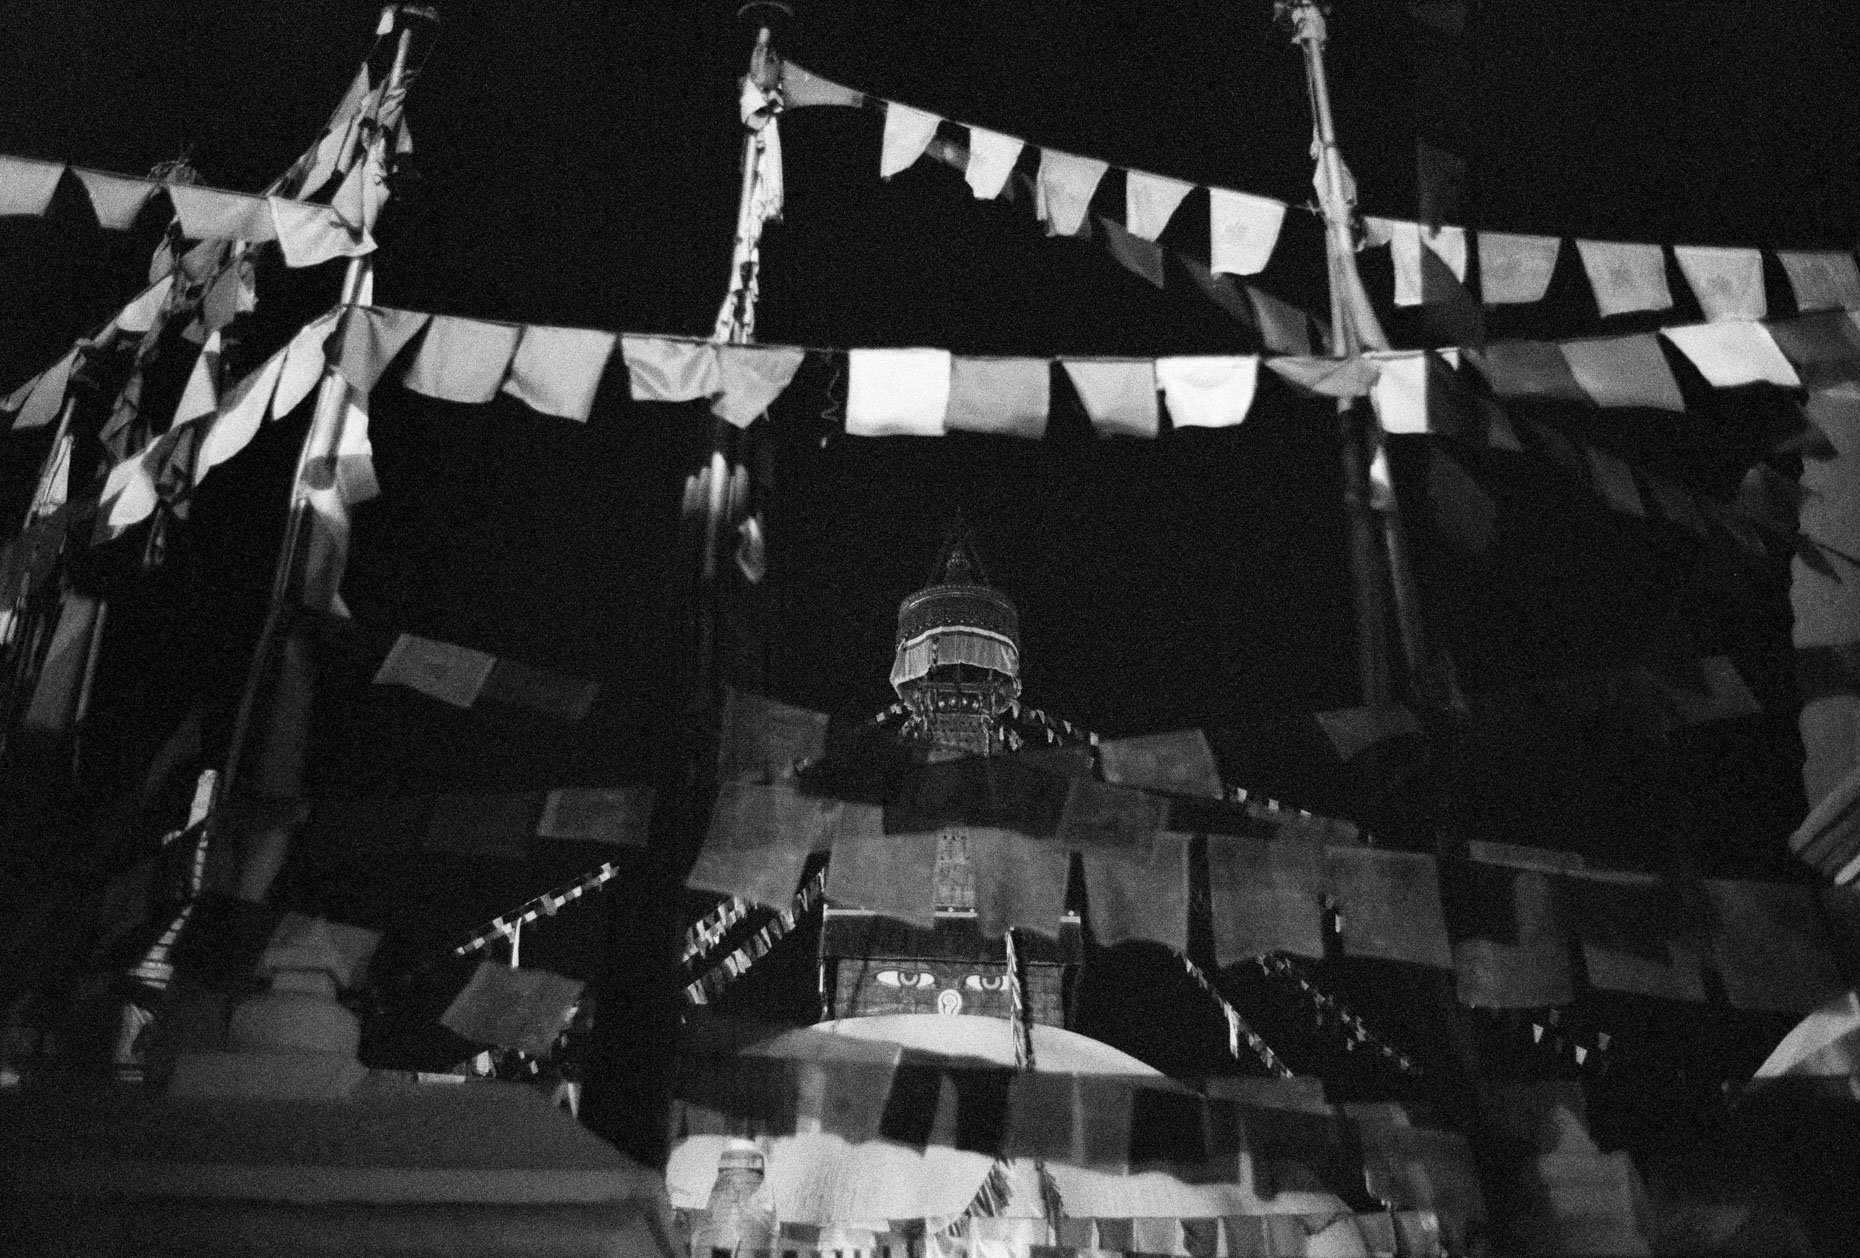 Stupa at Night, Boudhanath, Nepal